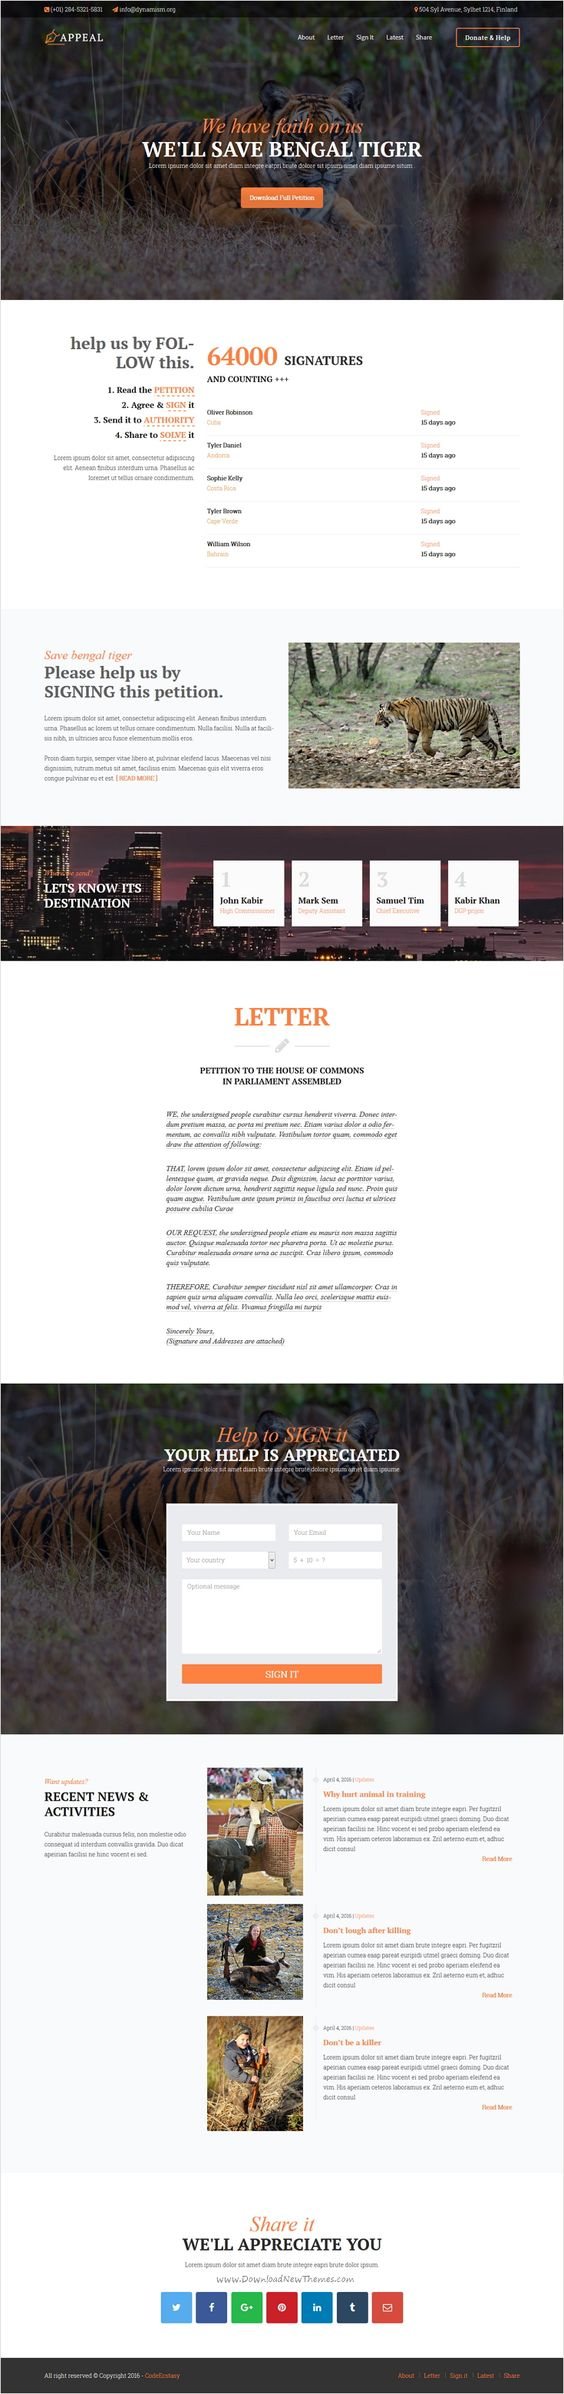 Appeal is a modern looking #WordPress theme designed & developed for #wwf #tiger #hunting #Petition Websites in mind and it also suites for other non profit Activism website with 5 unique homepage layouts download now➩ https://themeforest.net/item/appeal-fully-functional-petition-theme/16149266?ref=Datasata